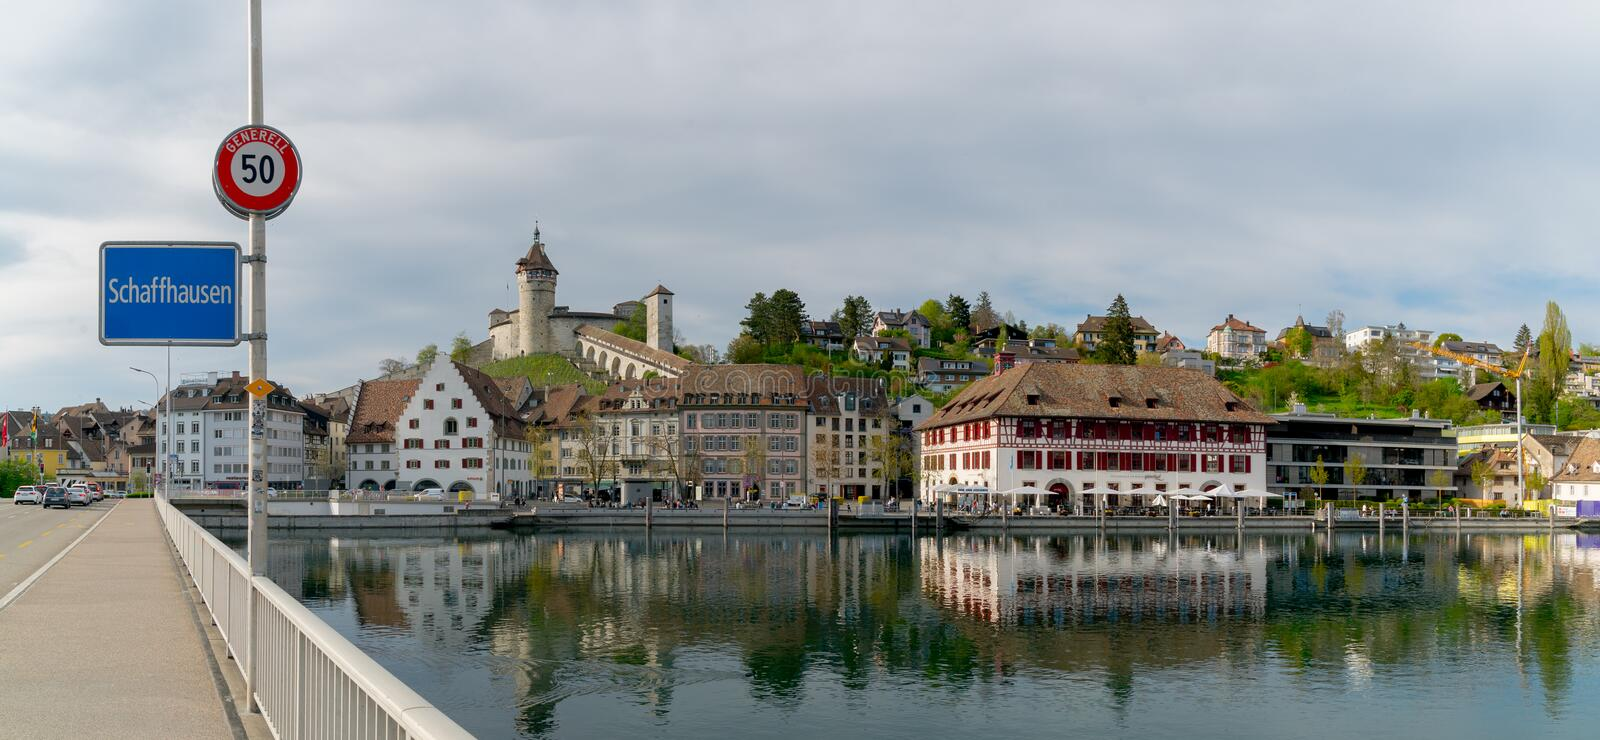 Schaffhausen, SH / Switzerland - 22 April 2019: view of the city of Schaffhausen with the bridge across the Rhine and city limits. Sign royalty free stock images